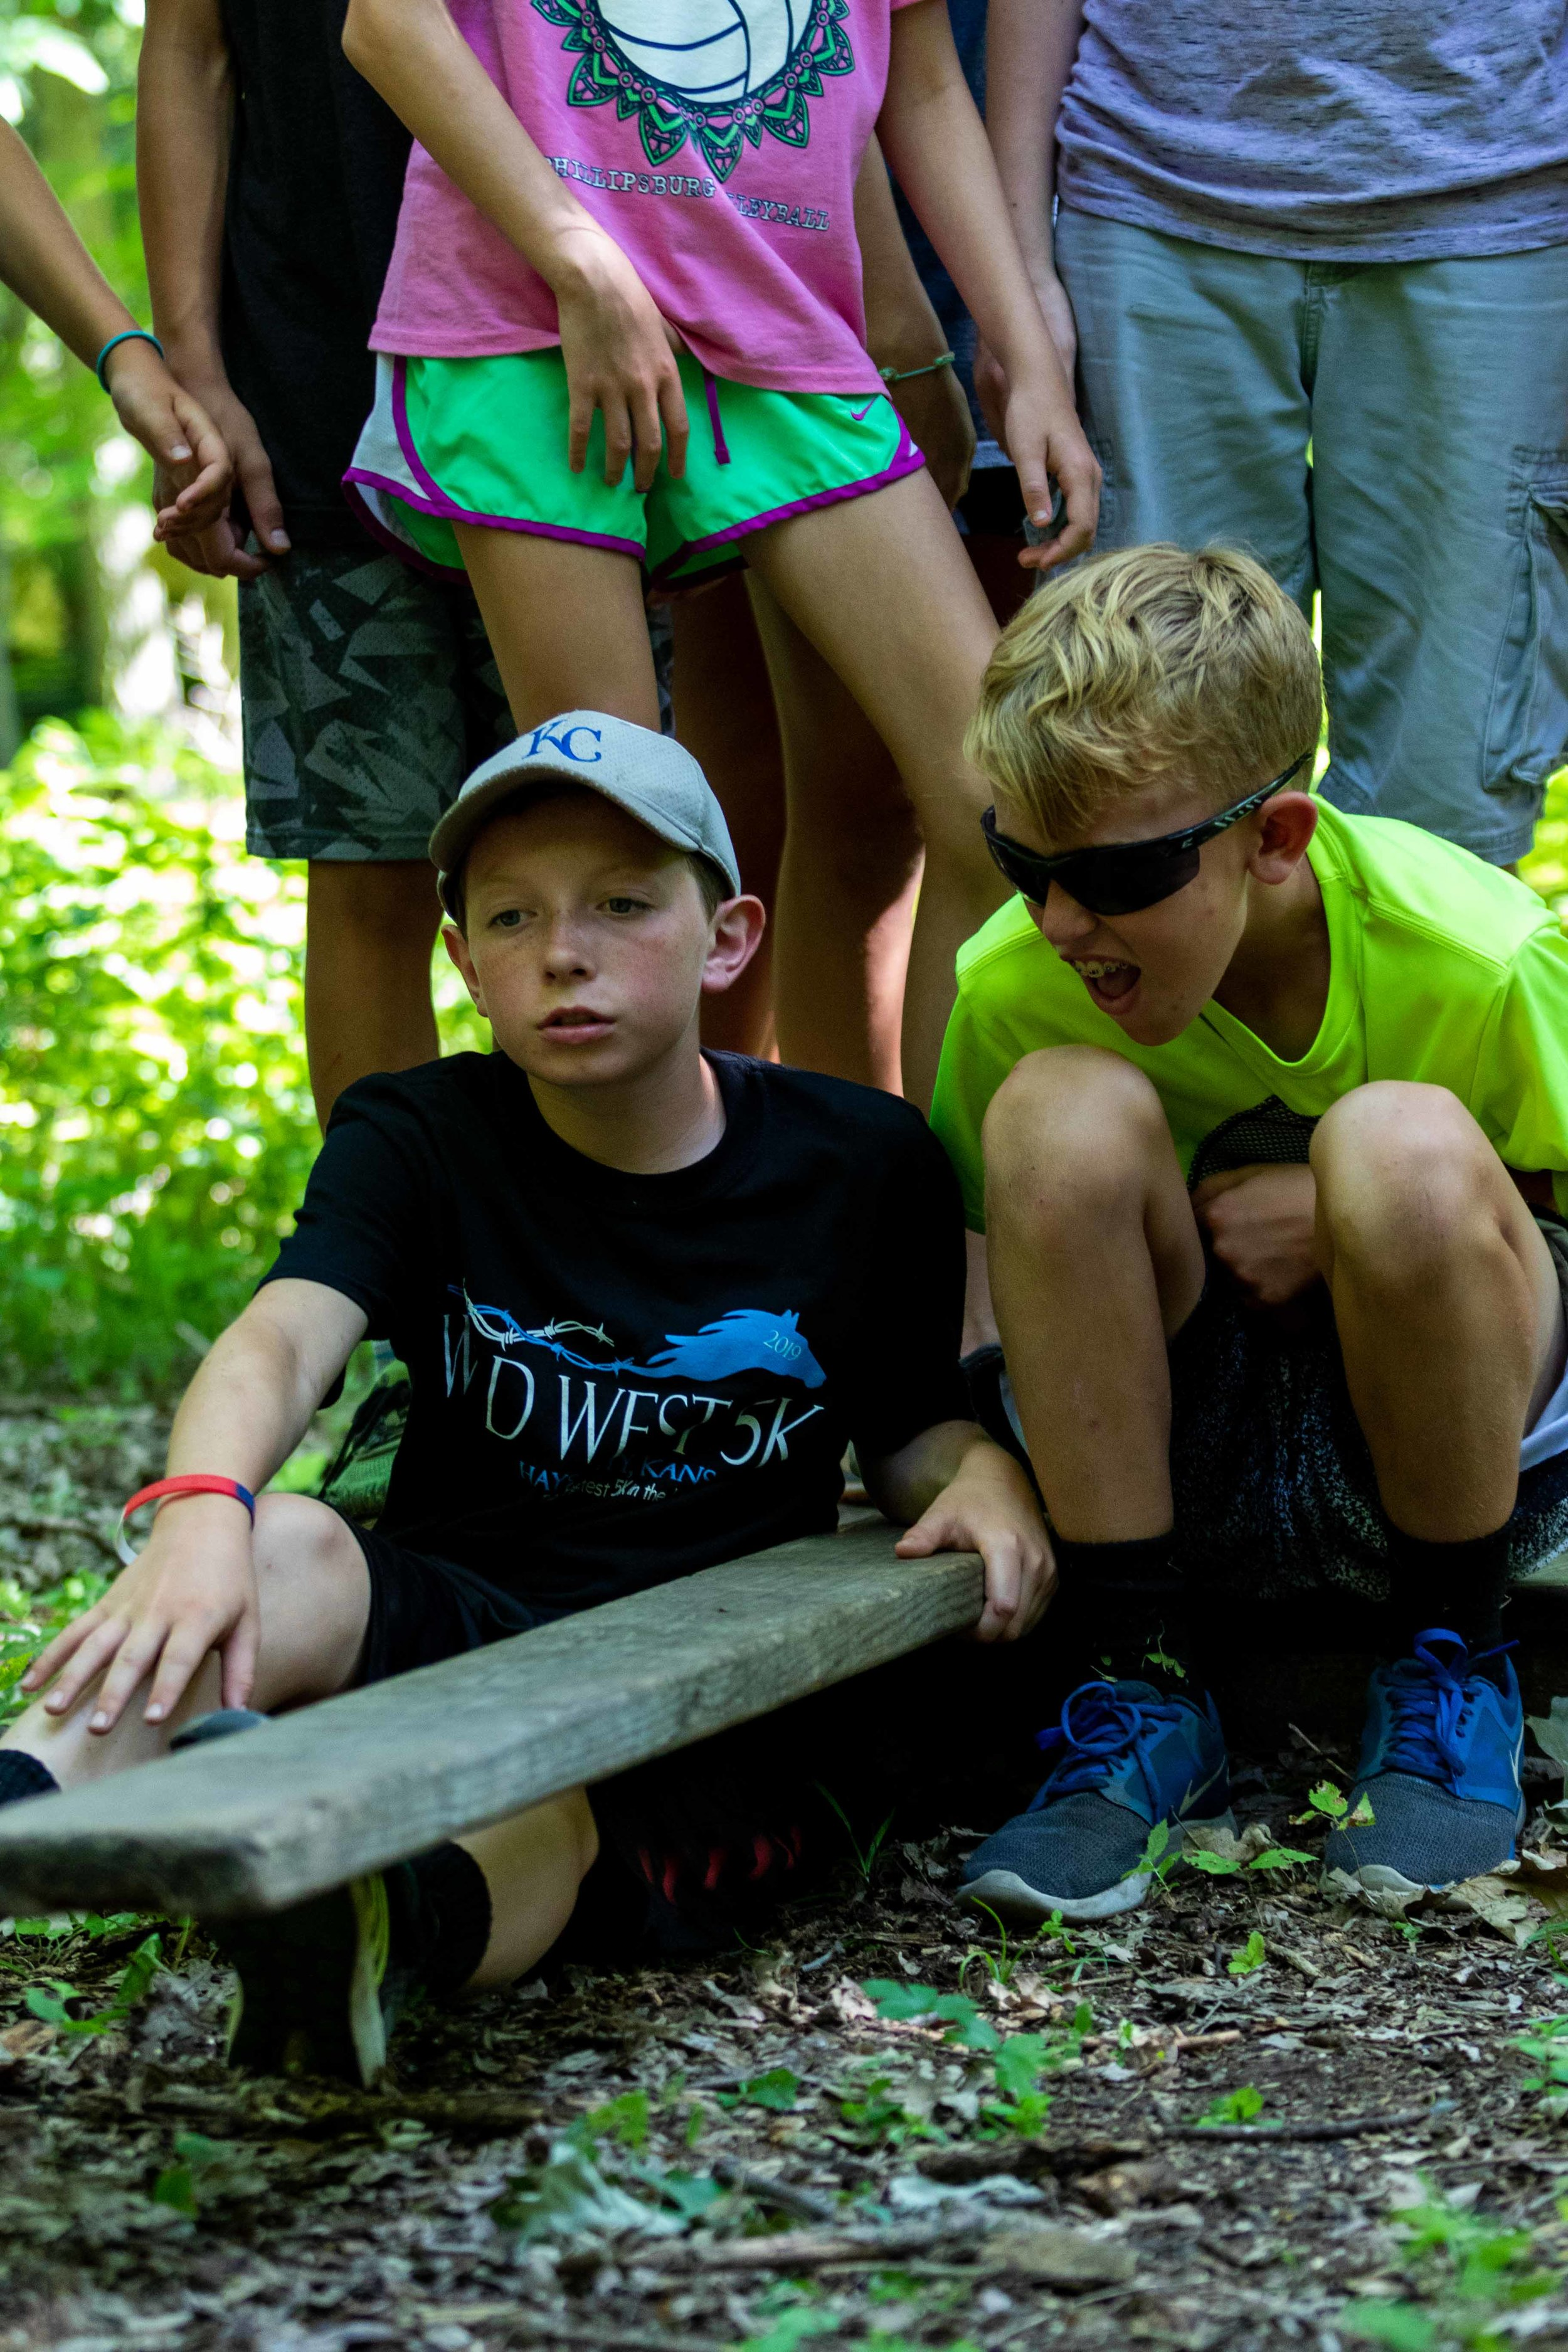 Low Ropes Course - Not a fan of heights, but still want the team building? Then our low ropes course is for you. With multiple challenges meant to encourage teamwork and communication, you will leave low ropes with a stronger bond than you began.